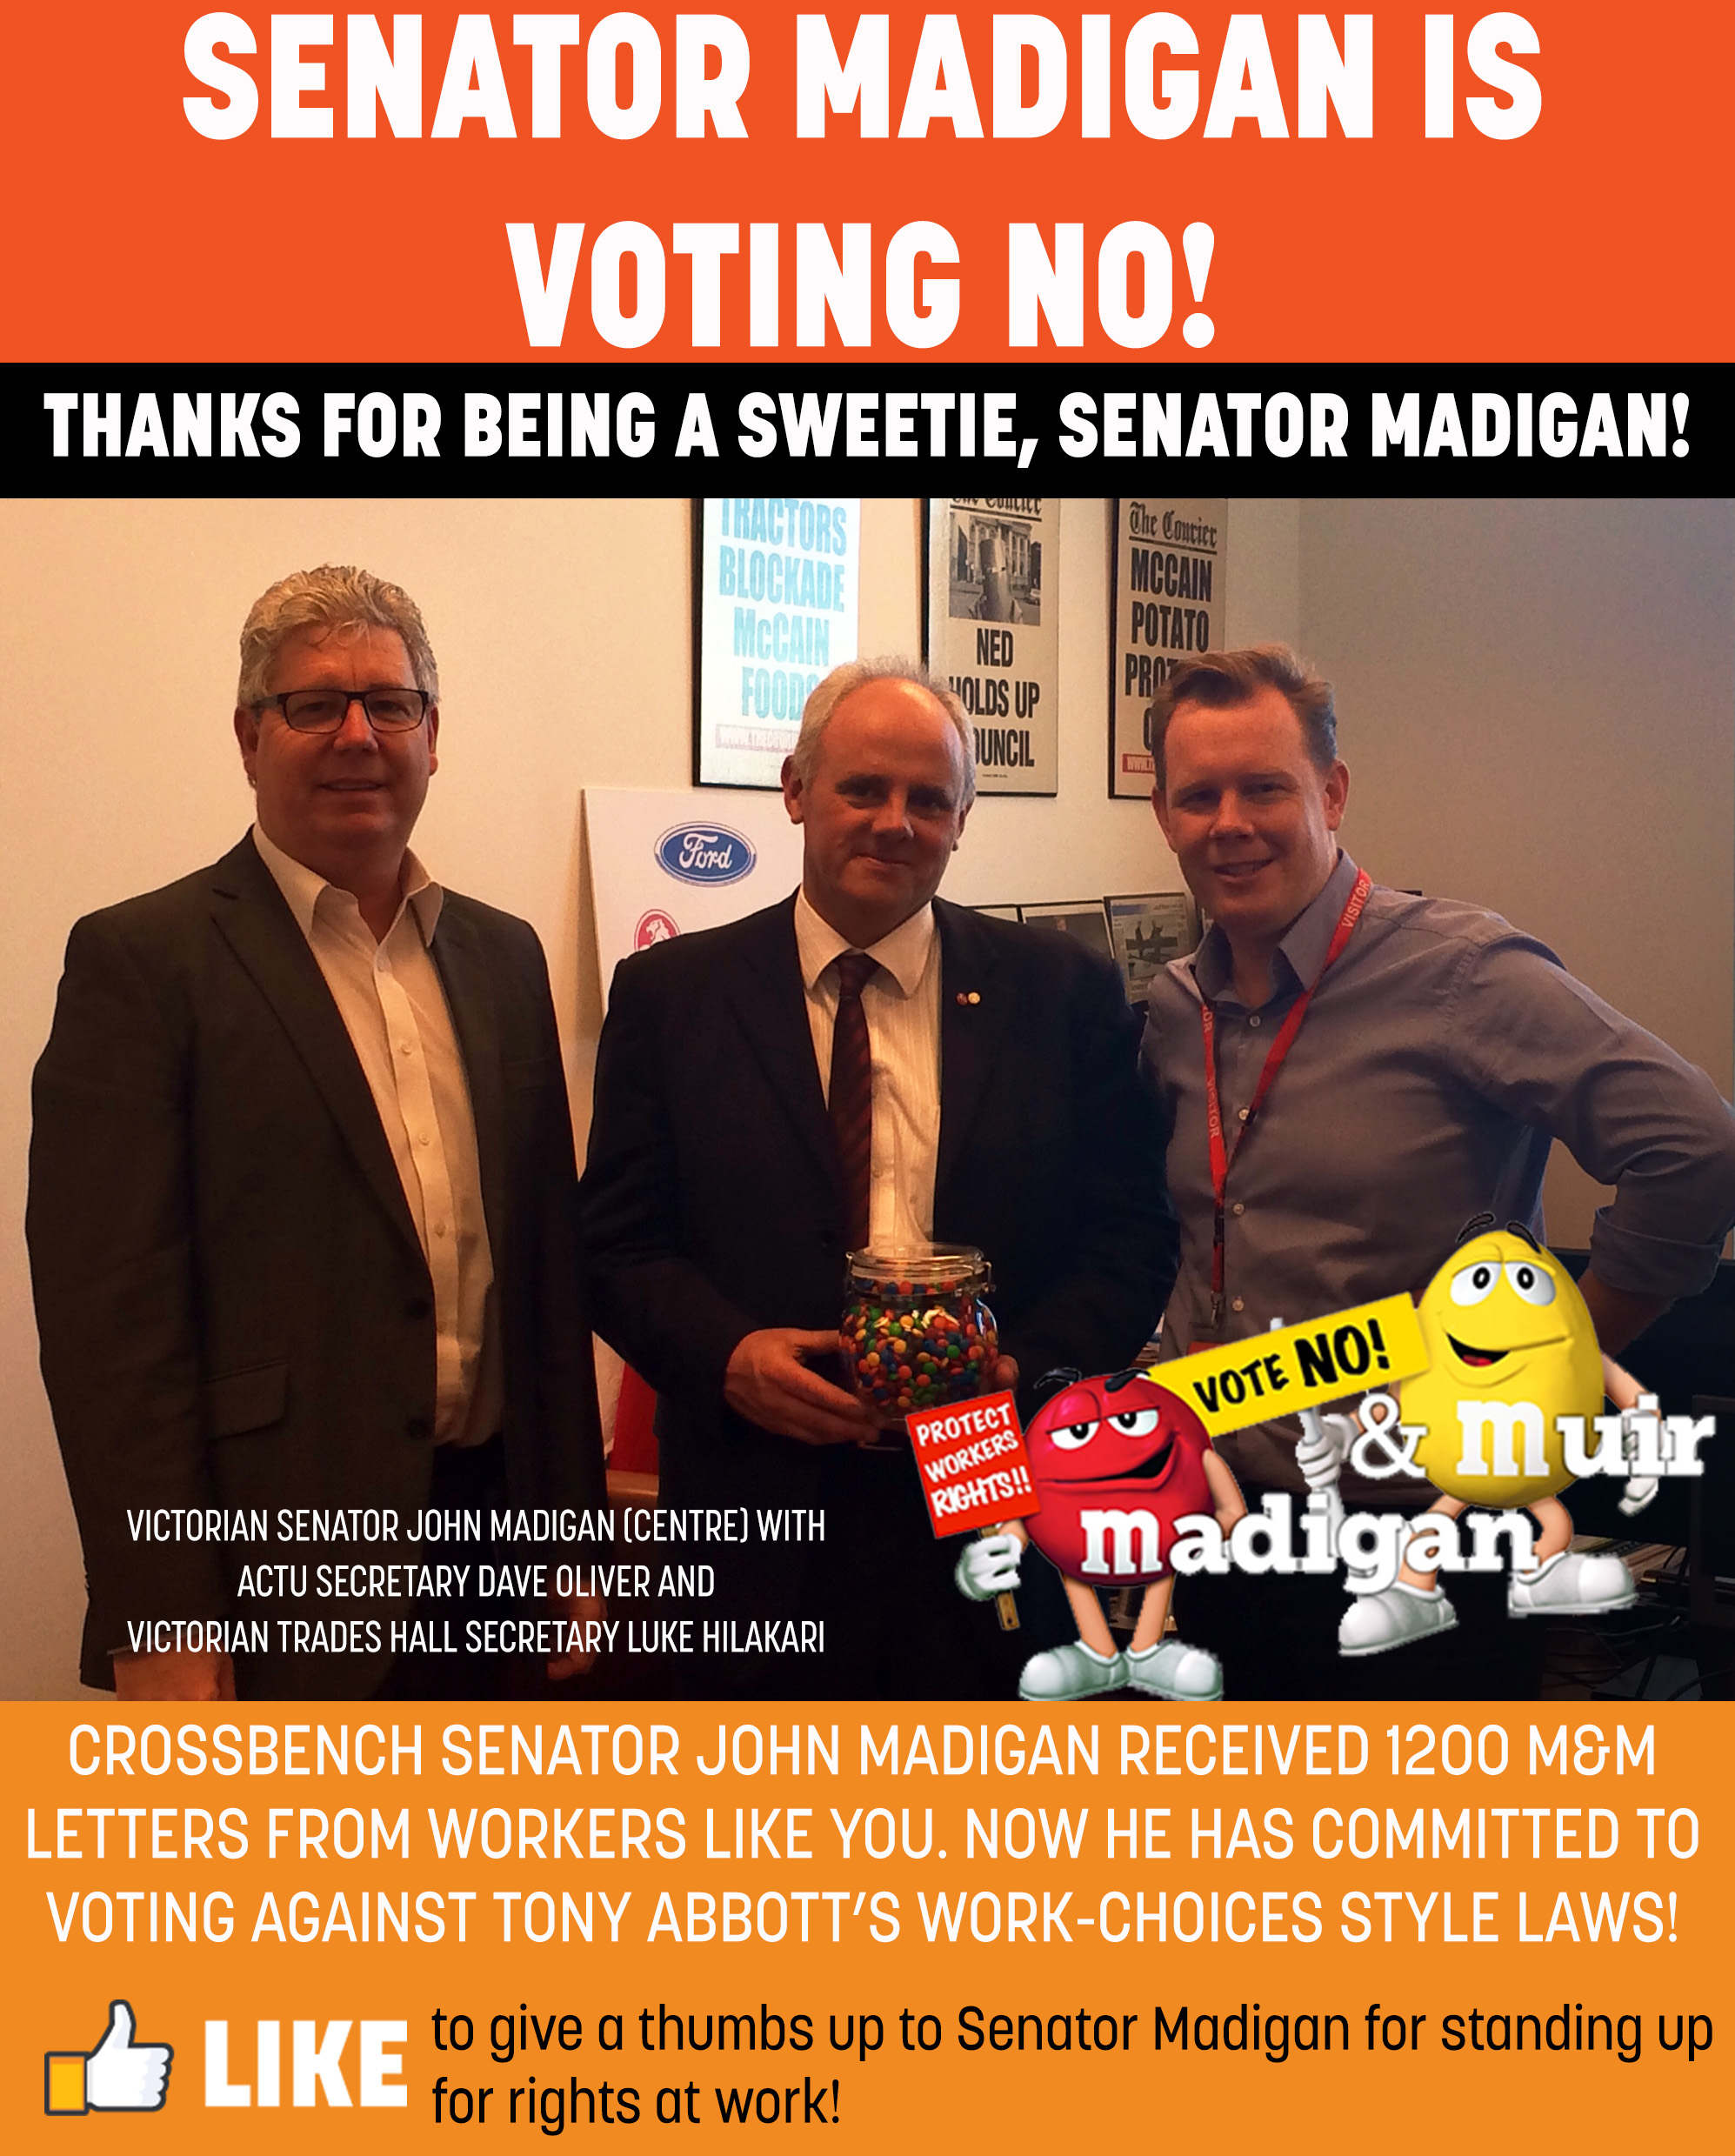 madigan_thanks_2.jpg